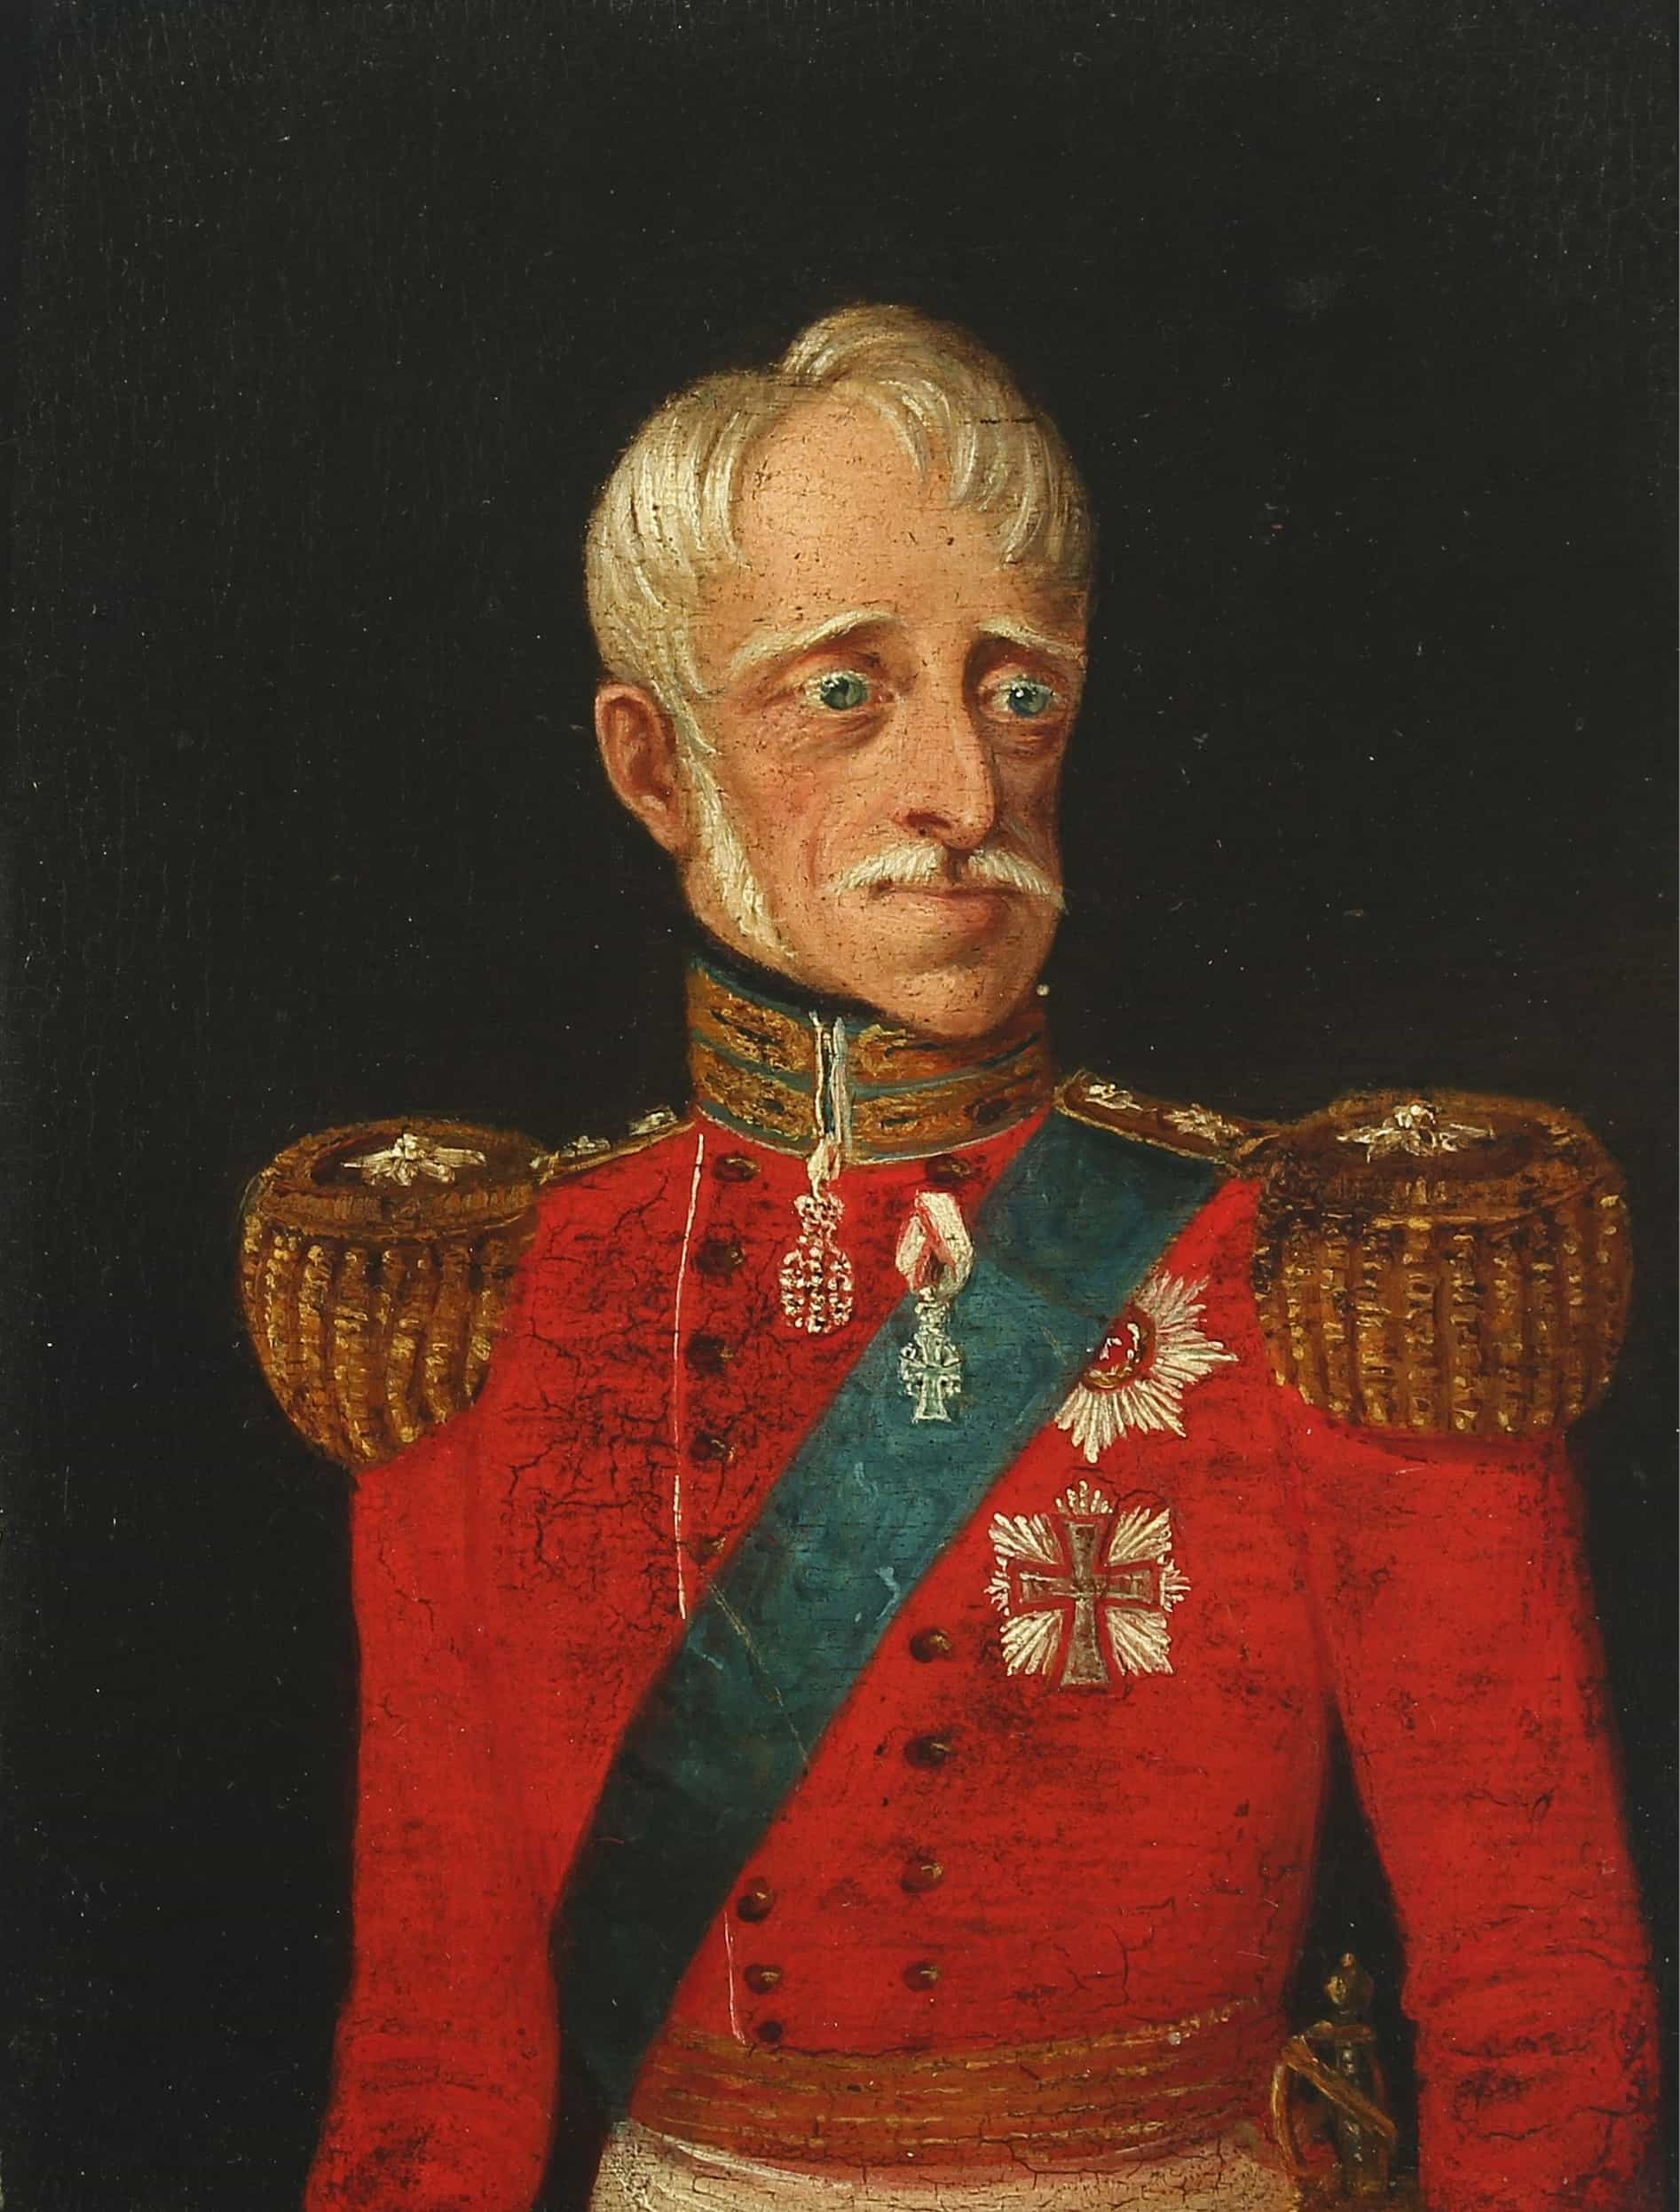 Frederick VI was King of Denmark from 13 March 1808 to 3 December 1839 and the last king of Denmark–Norway